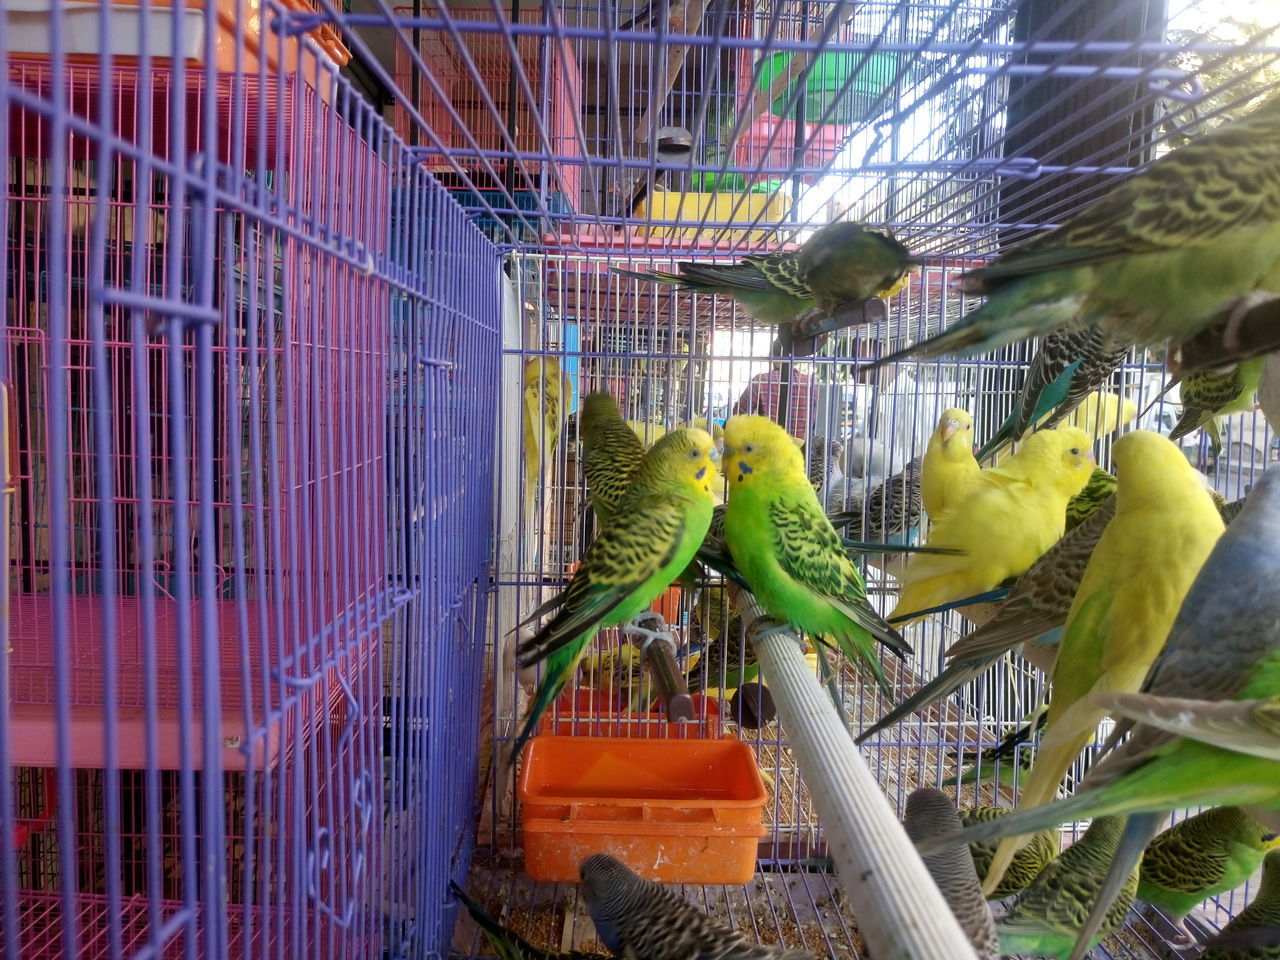 cage, birdcage, parrot, animal themes, animals in captivity, trapped, budgerigar, bird, animal wildlife, green color, indoors, no people, perching, pets, nature, day